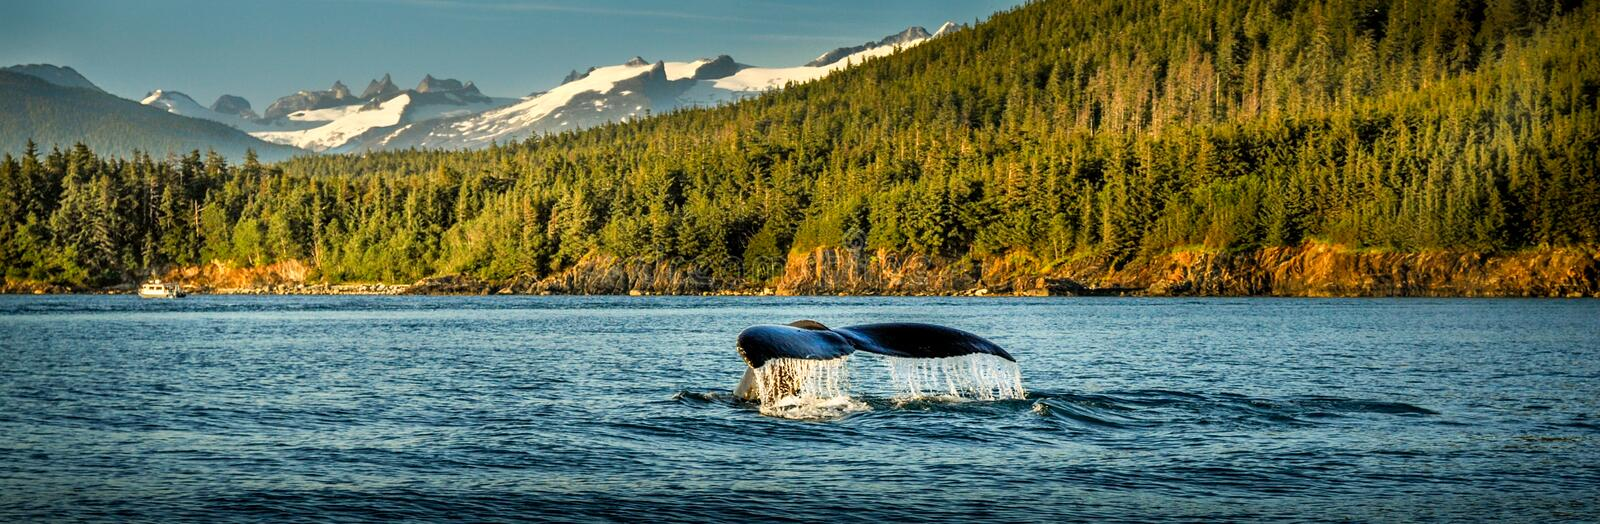 Watching whale diving and swimming in Alaska royalty free stock image